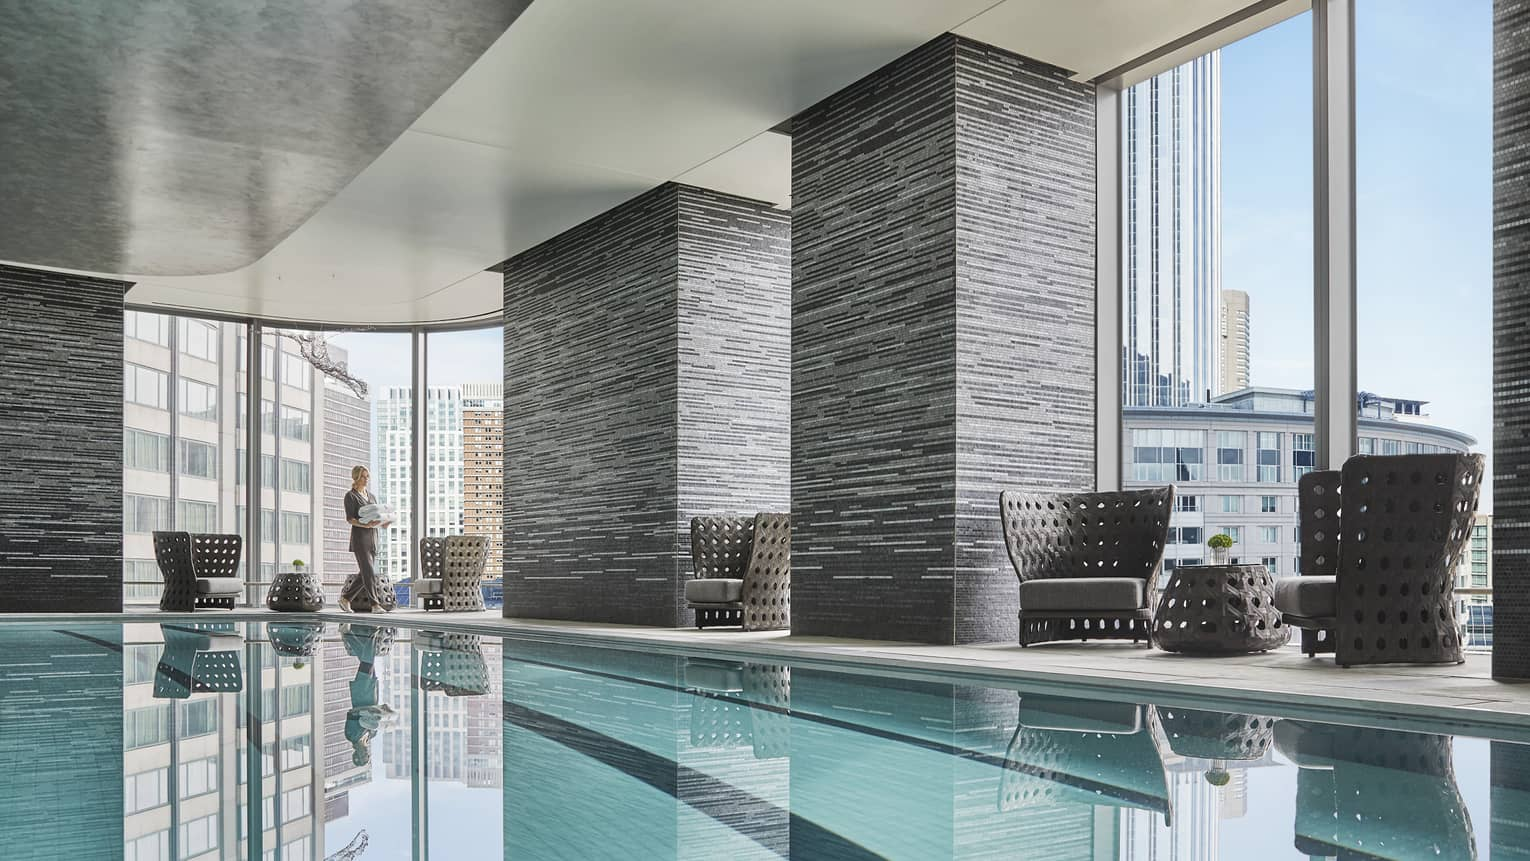 view of downtown boston skyline through the windows of the indoor pool